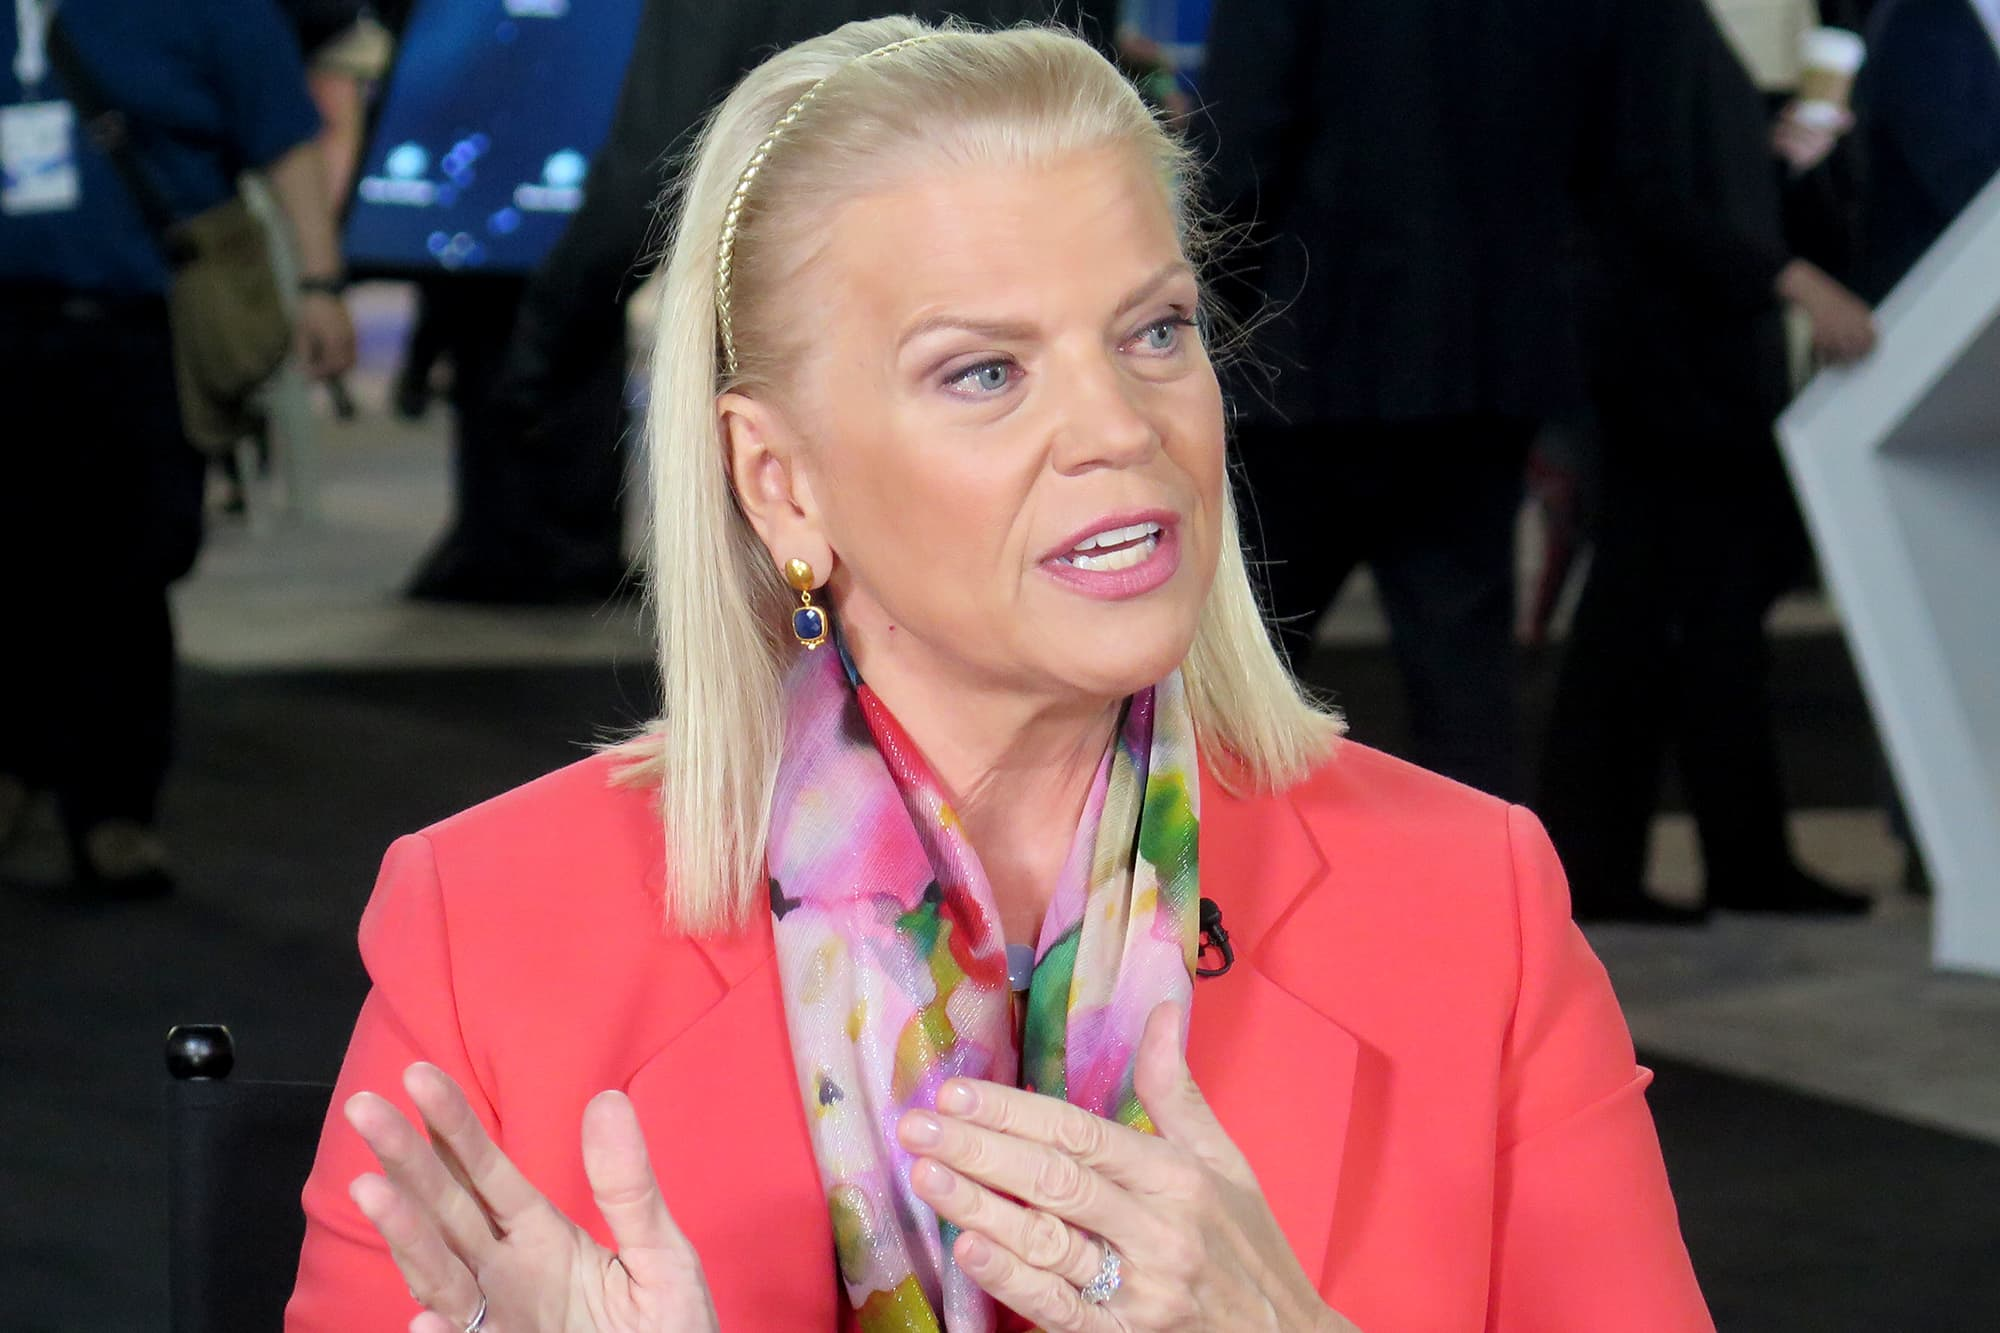 IBM CEO Ginni Rometty calls consumer tech companies 'irresponsible,' says they should be liable for misinformation